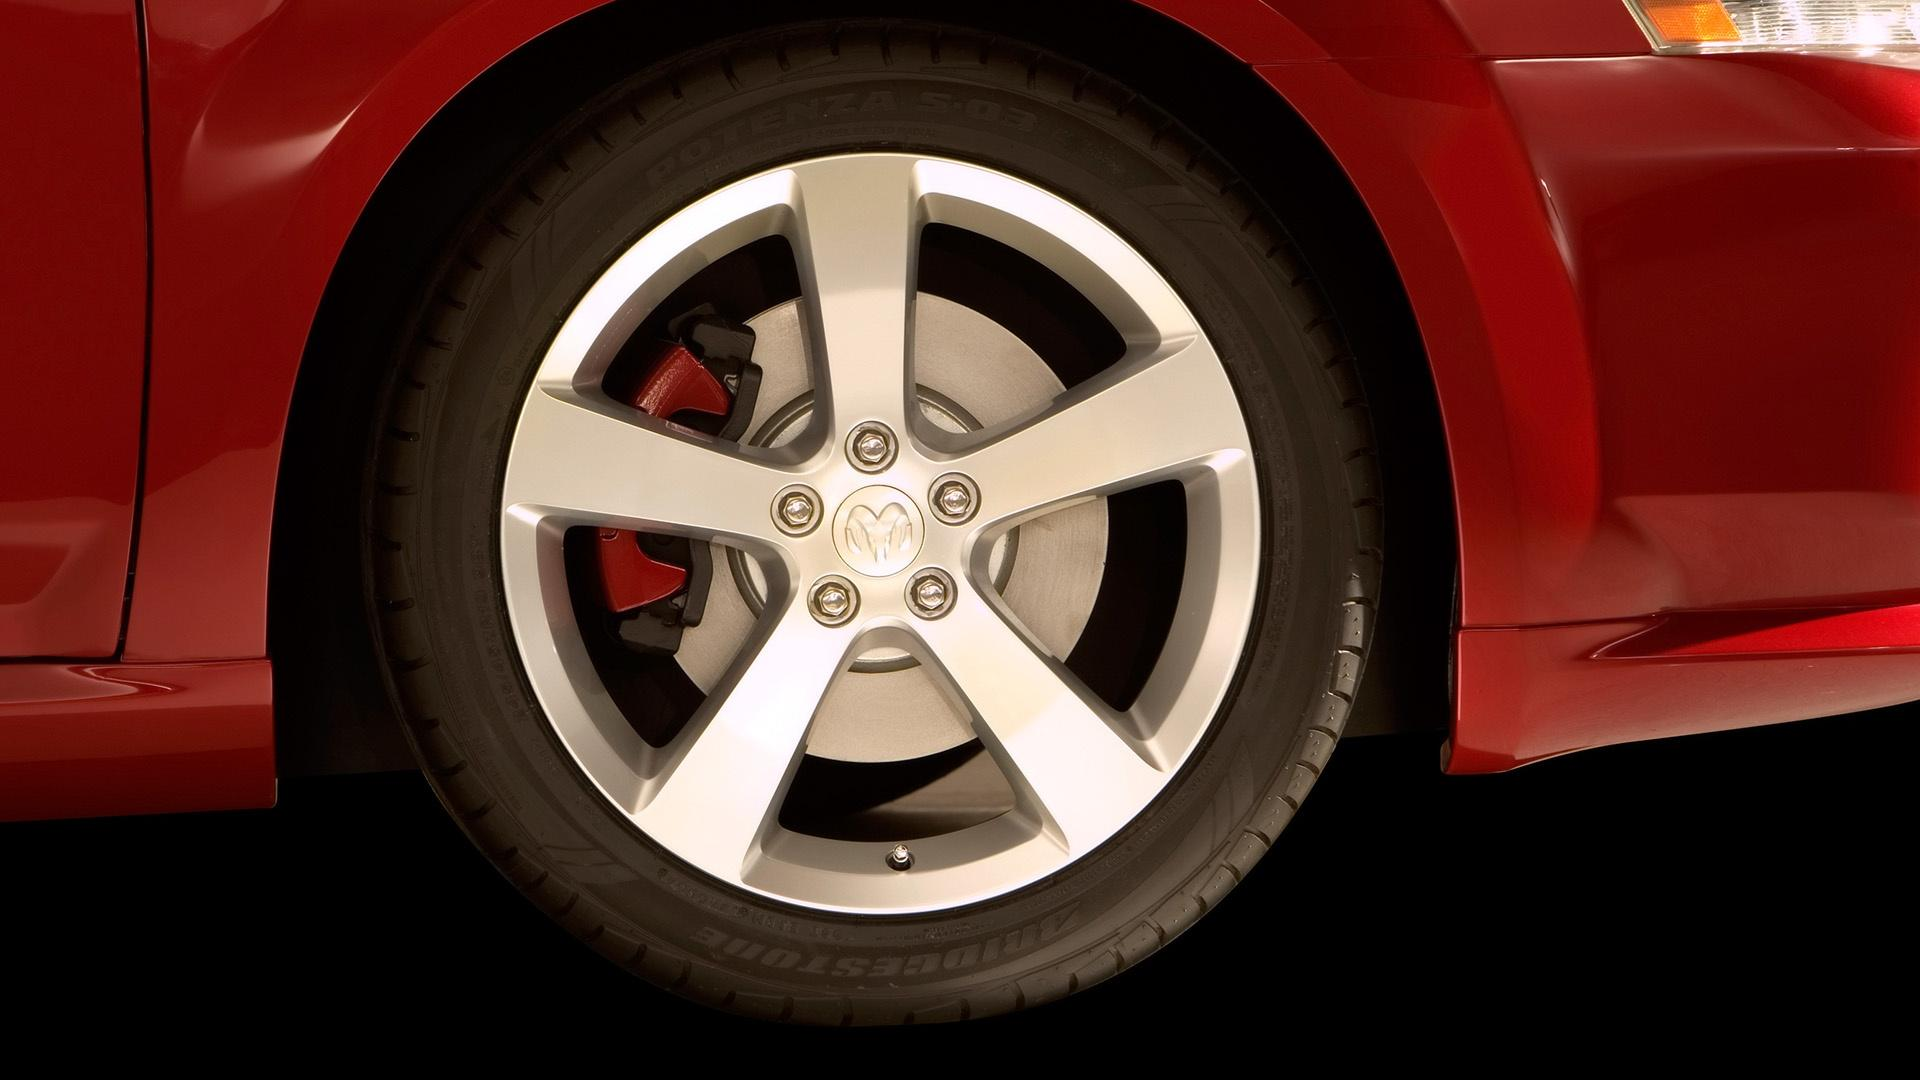 2006 Dodge Avenger Concept Wheel 1920x1080